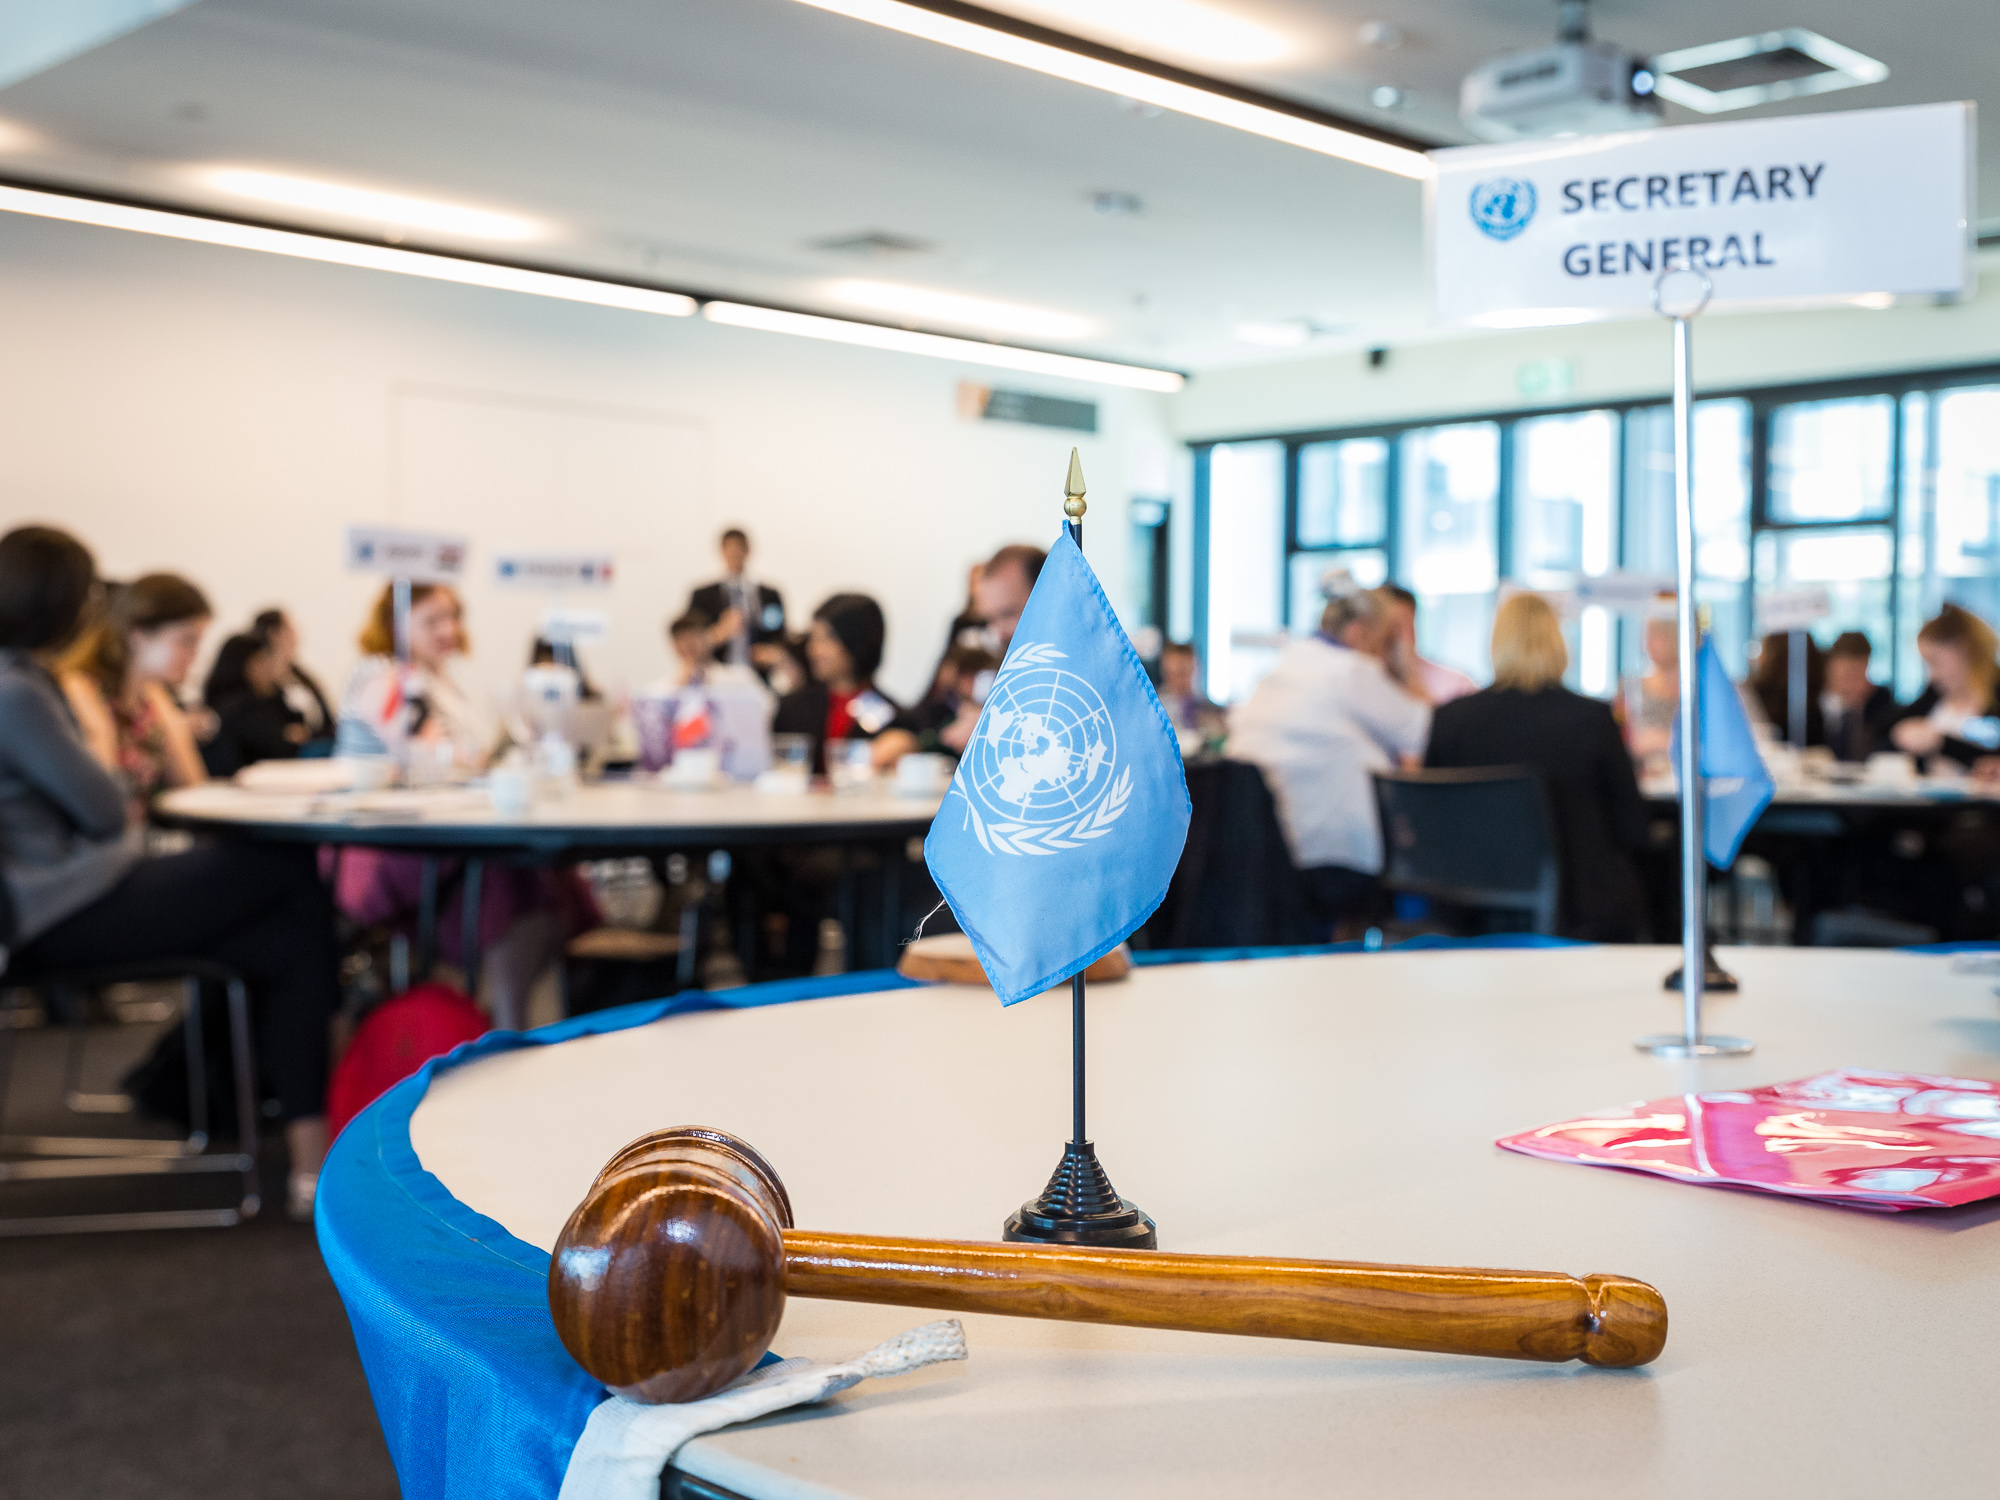 Modern slavery – today's greatest threat to human rights? Be a UN Delegate for a day to debate this vital topic.